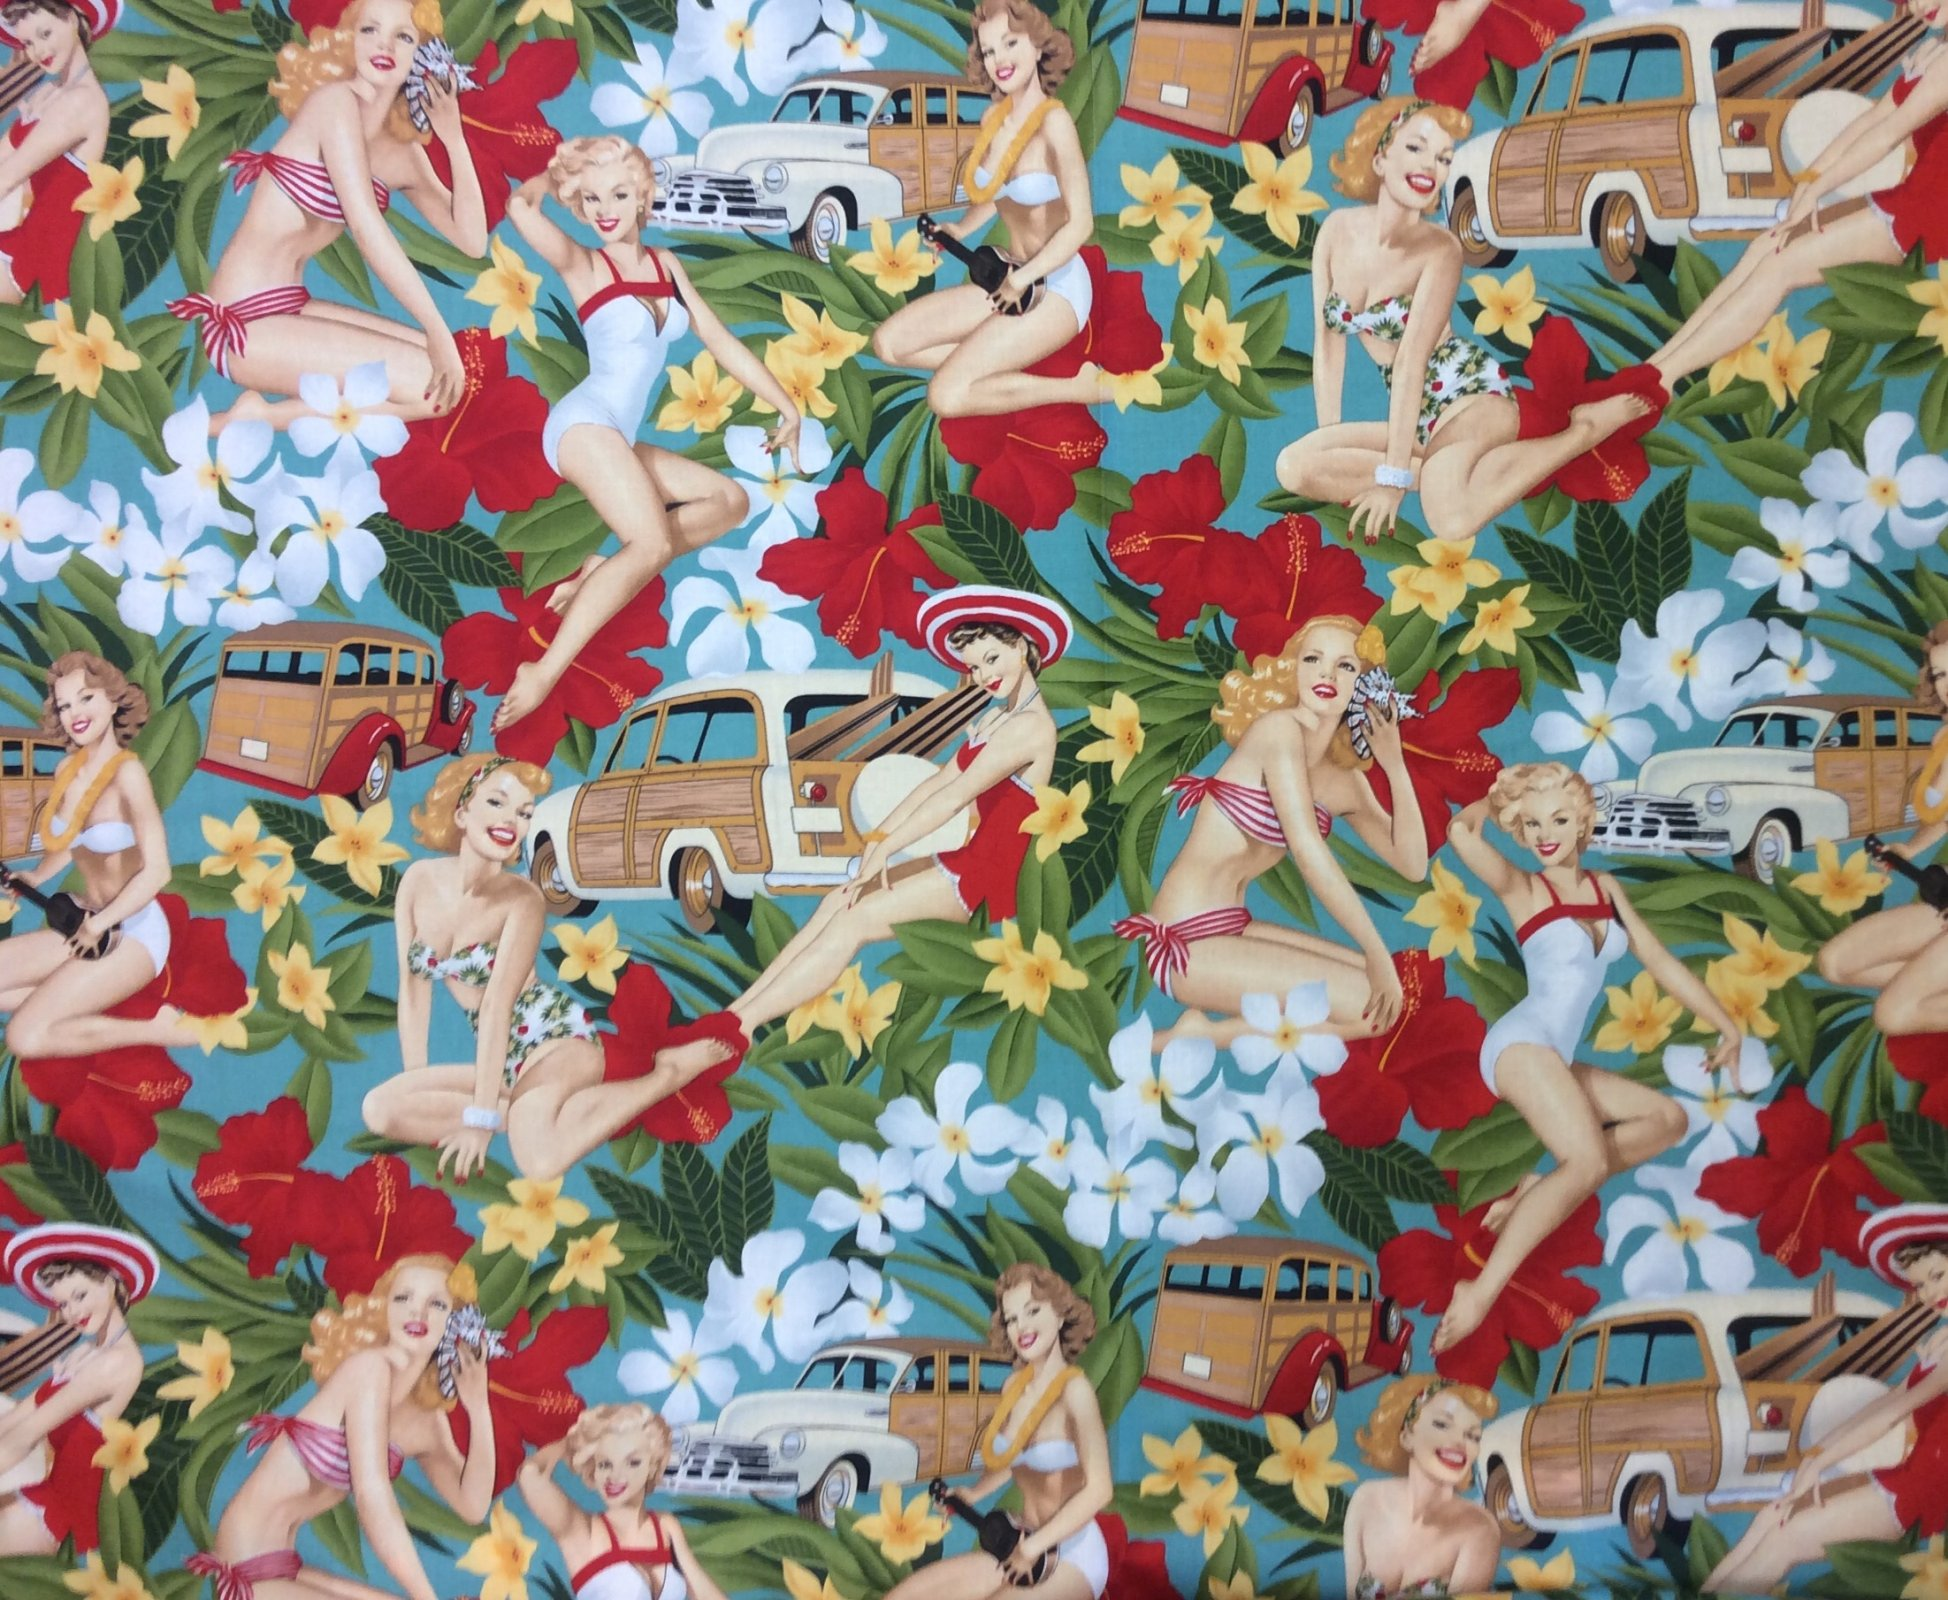 Sexy Pin Up Girls Aloha Girls Woody Wagon Retro Hawaii Hula Luau Tiki Bar Alexander Henry Cotton Quilt Fabric AH233